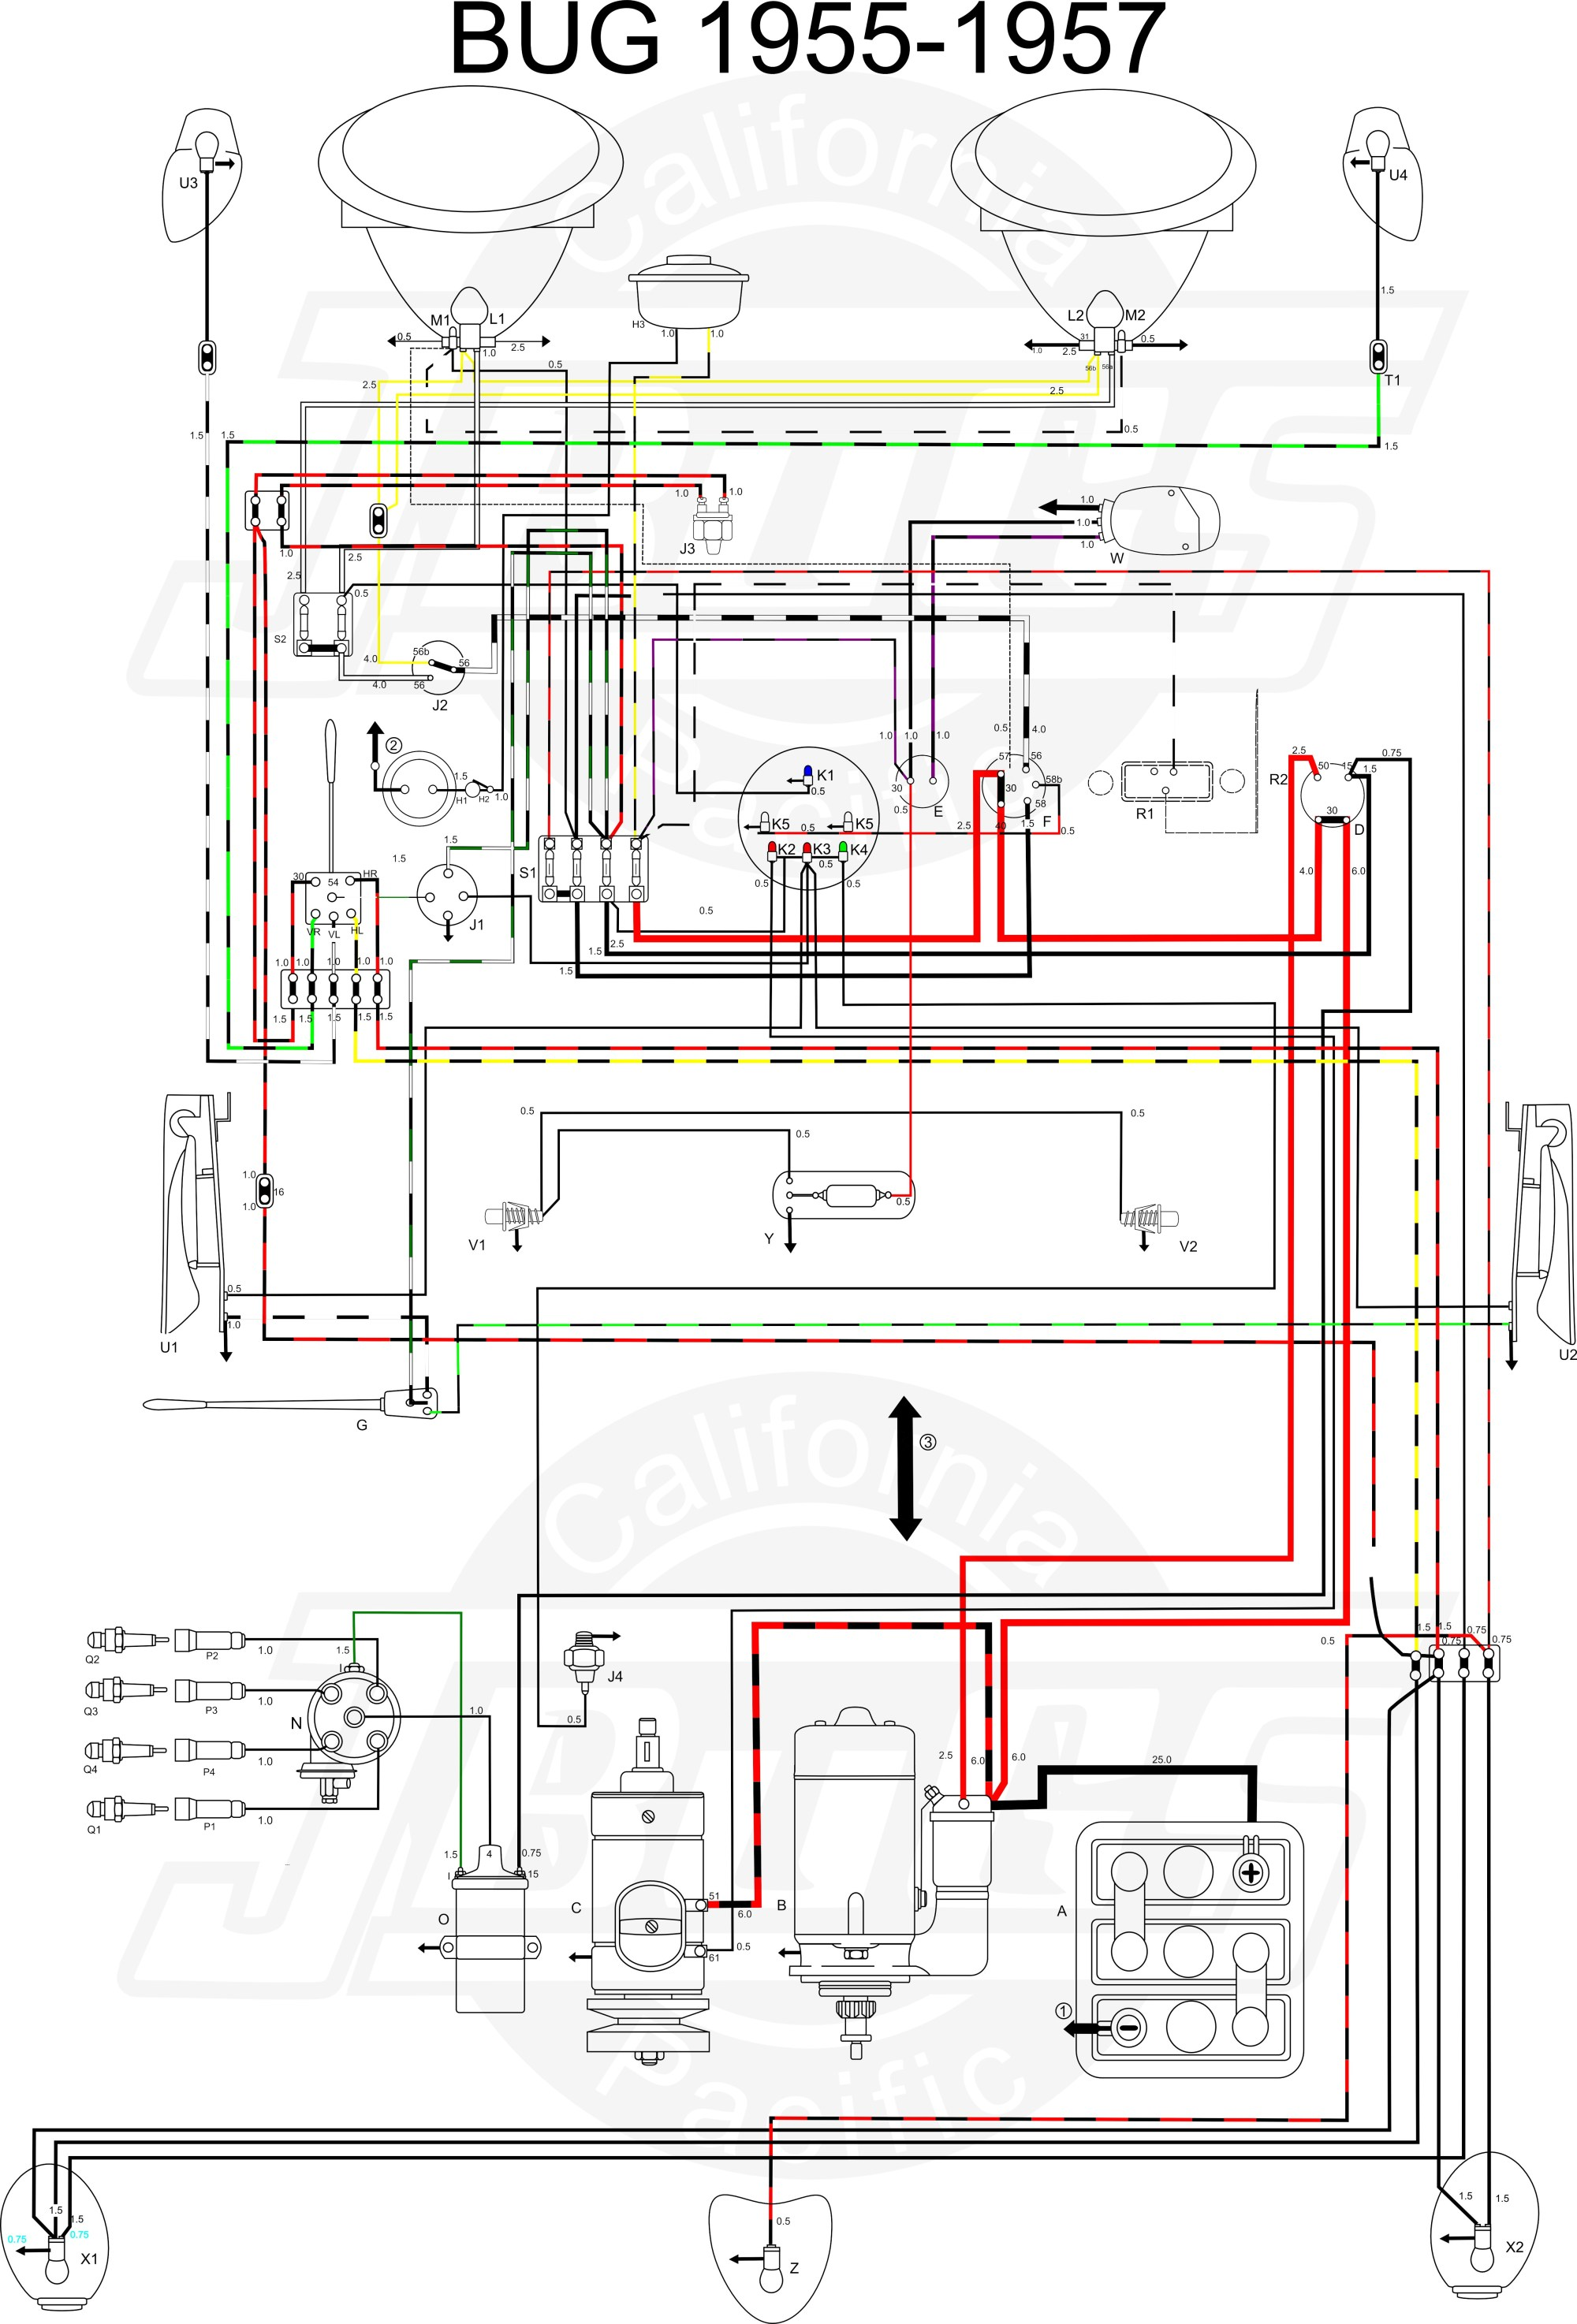 hight resolution of vw tech article 1955 57 wiring diagram vw wiring diagram 1965 vw bug wiring